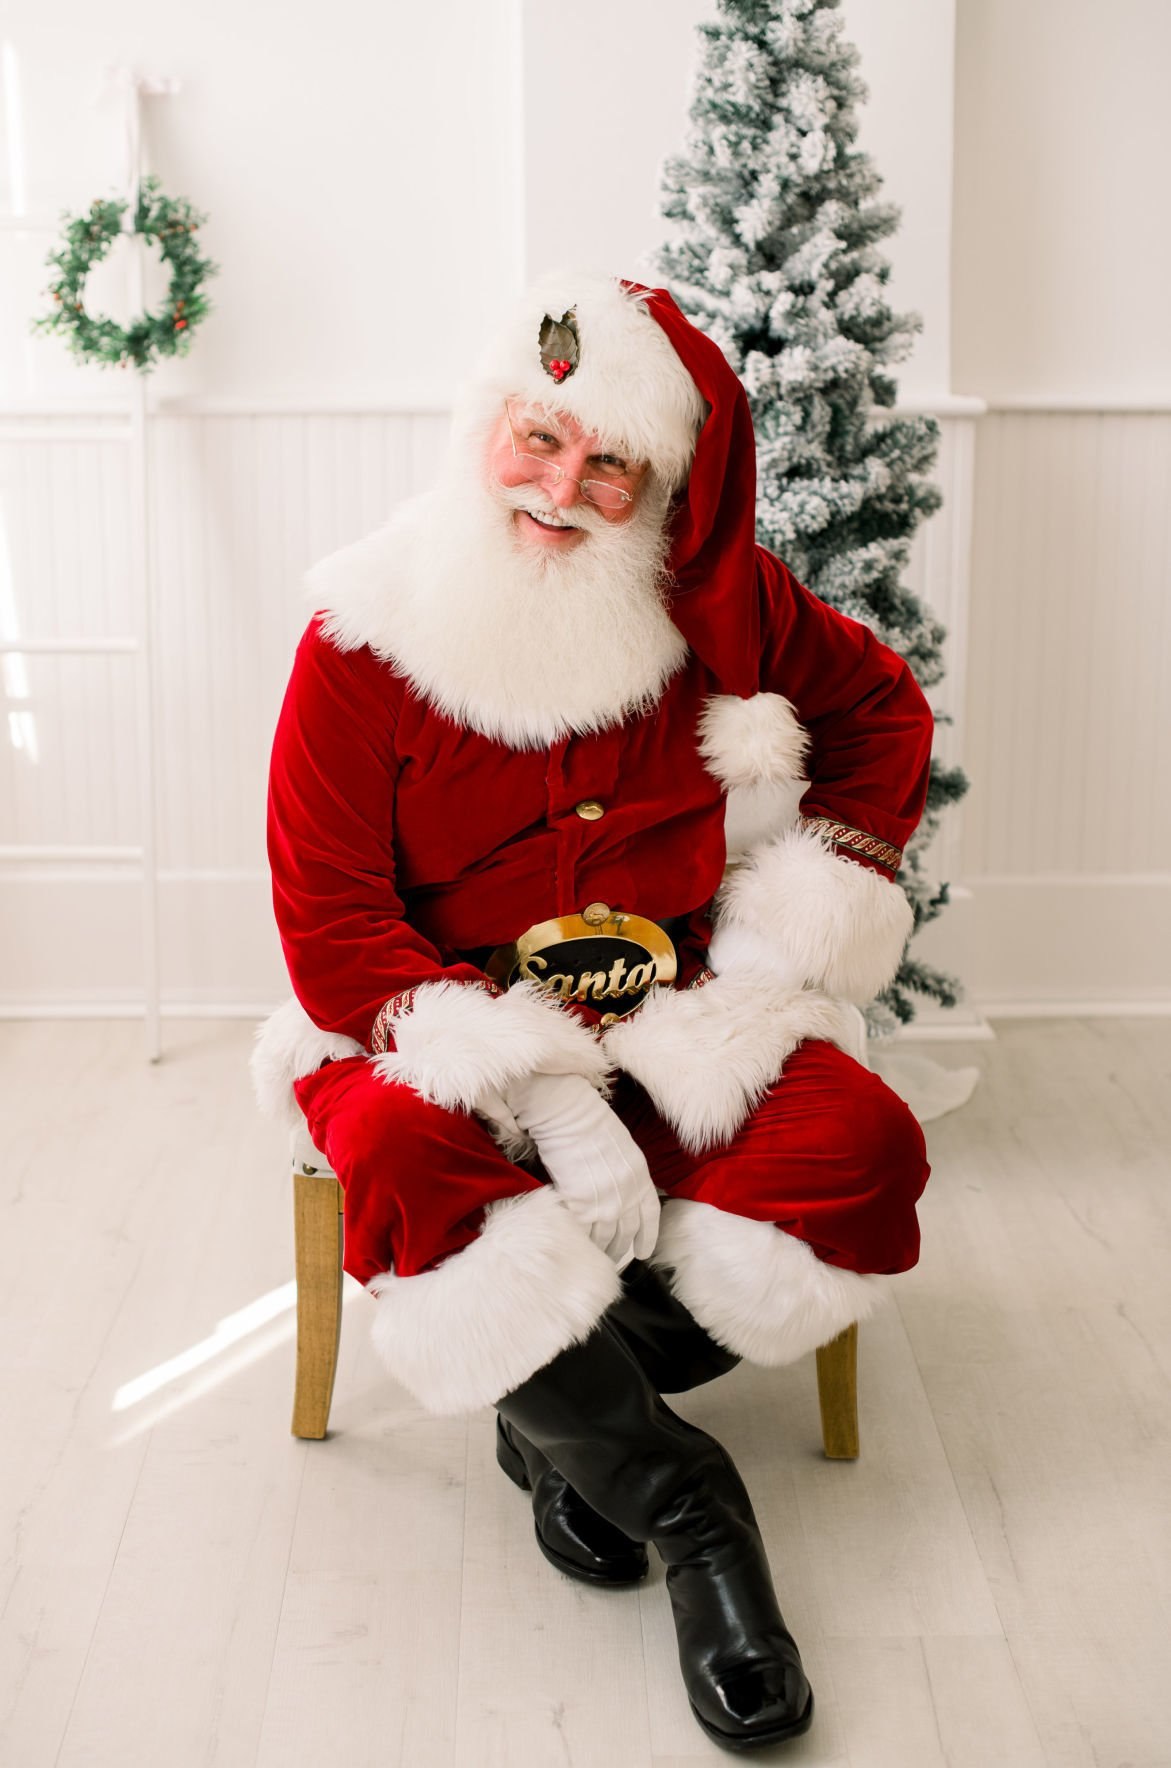 Santa Bob: 'He's exactly what I always envisioned Santa to be'